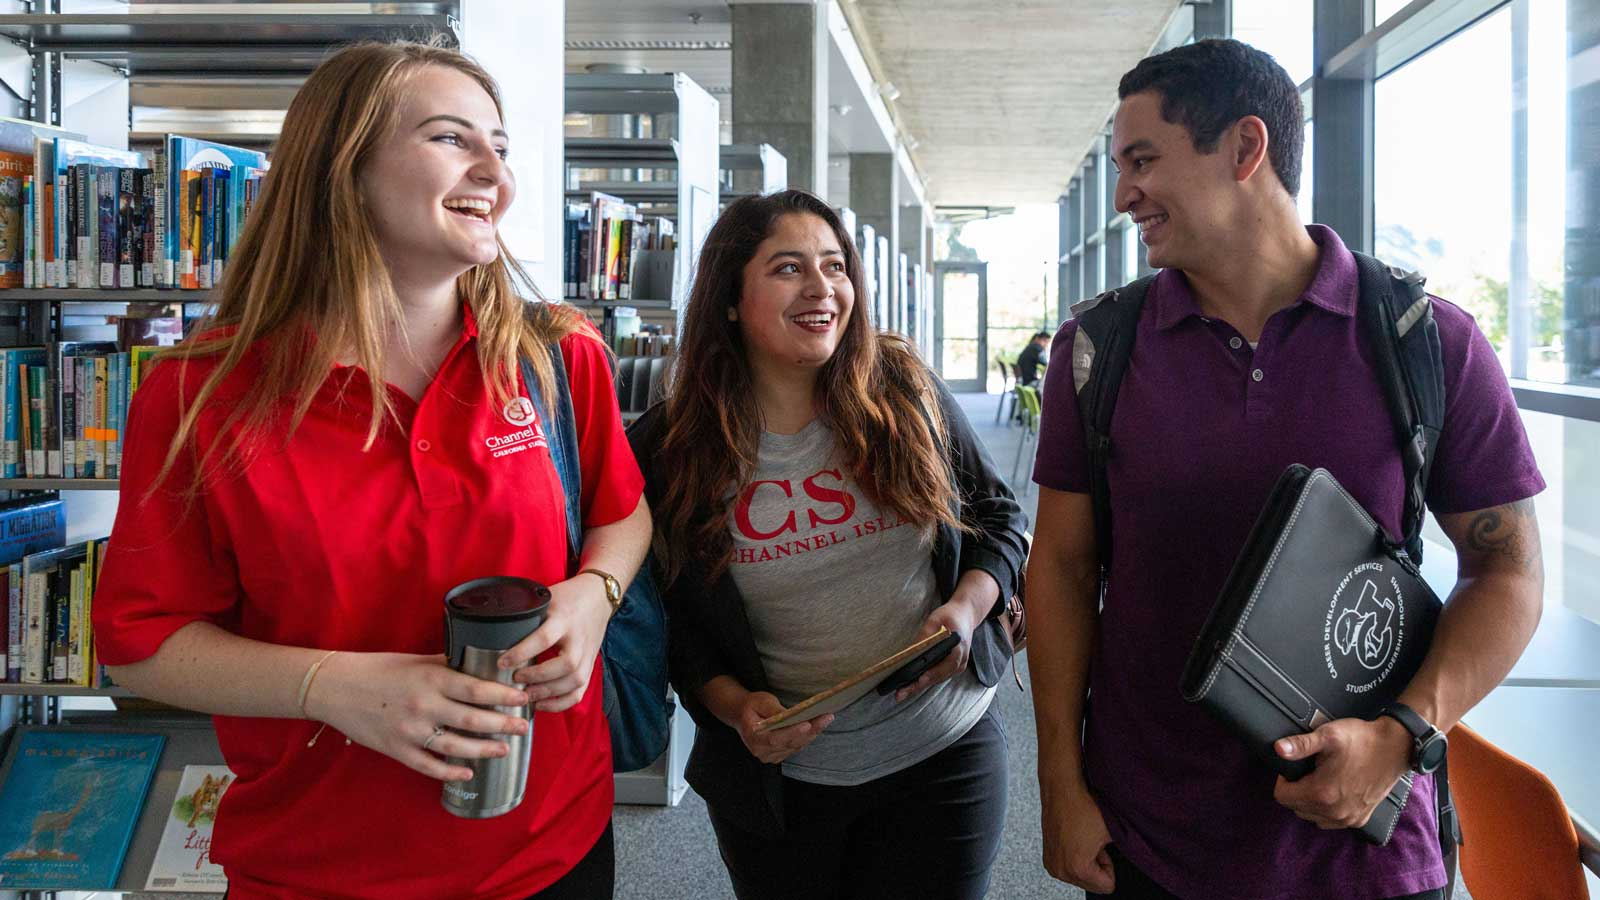 CSUCI's Business program is known for its interdisciplinary approach to learning